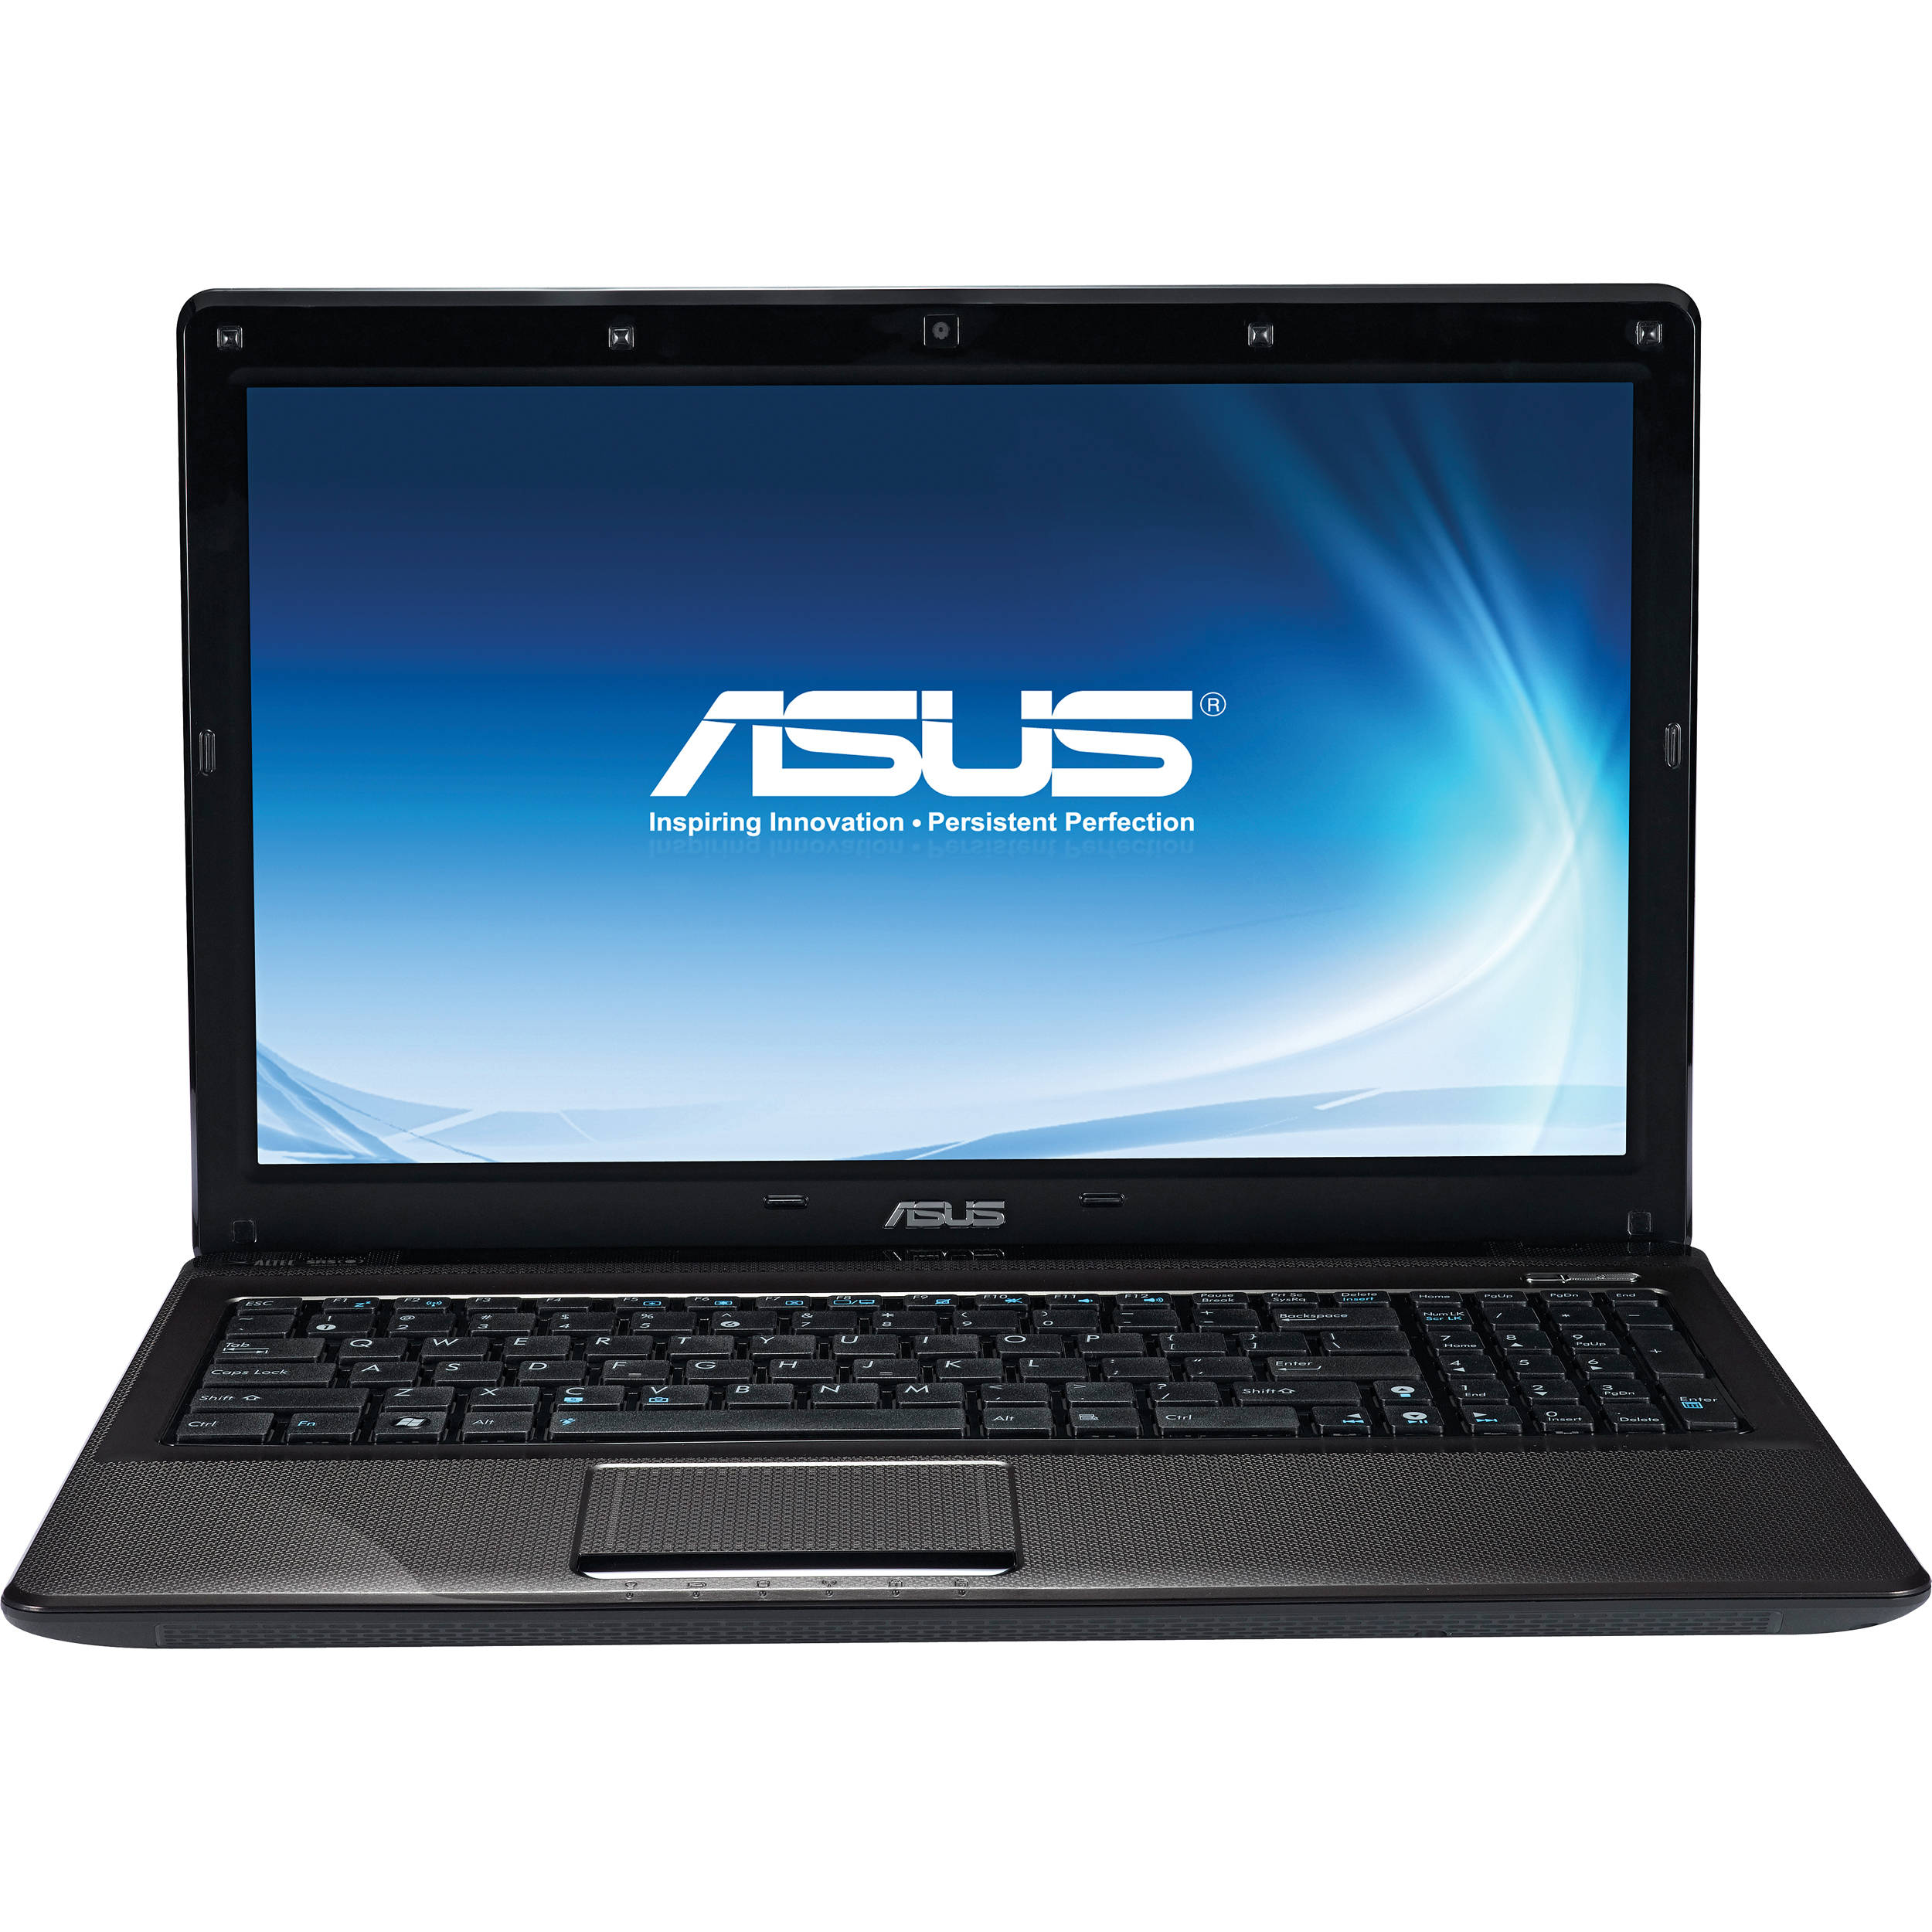 ASUS K52JK ATK WINDOWS 10 DRIVER DOWNLOAD